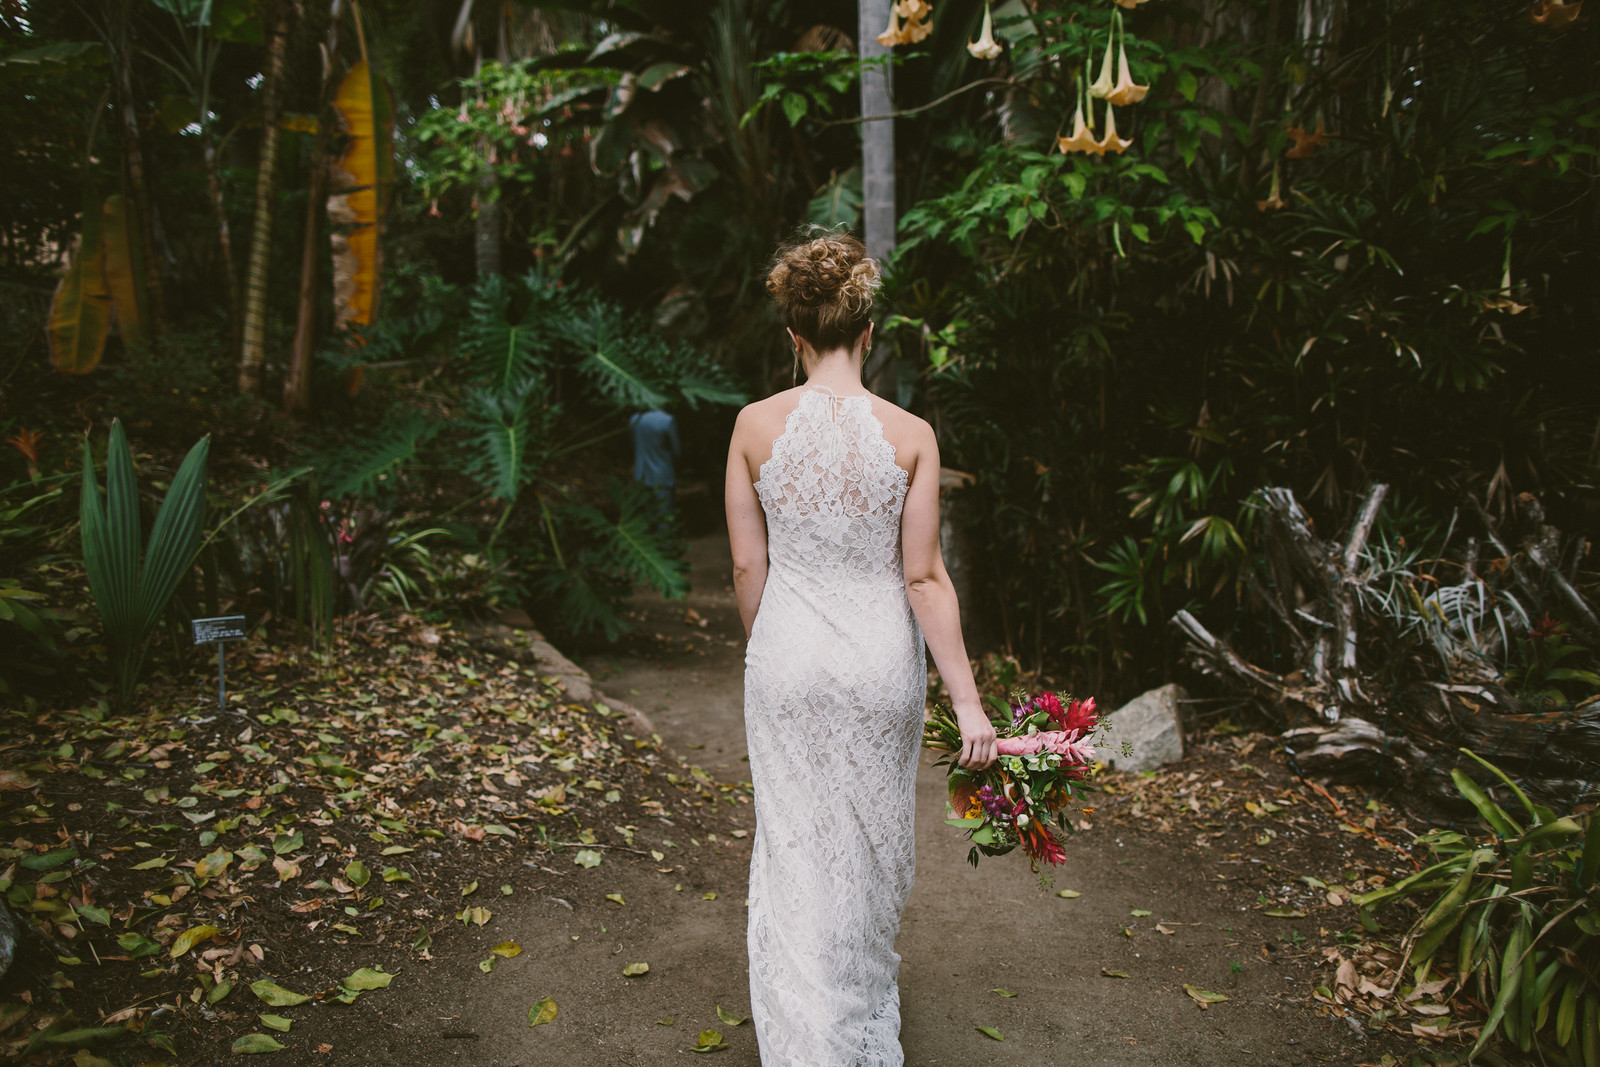 sandiego-botanic-garden-wedding-4.jpg